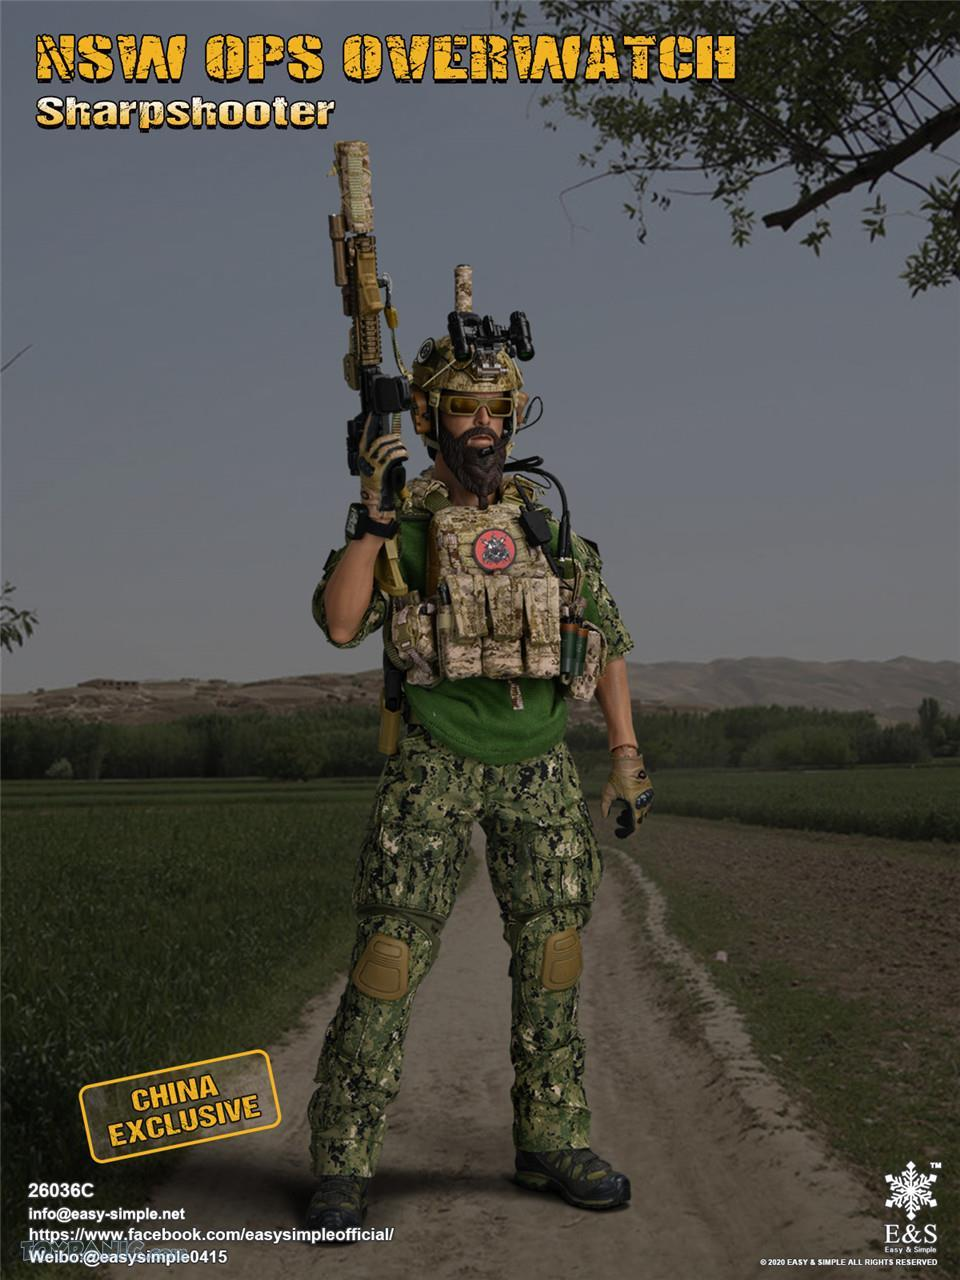 modernmilitary - NEW PRODUCT: Easy & Simple: 1/6 SW OPS Overwatch Sharpshooter (China Exclusive Version) 41920210